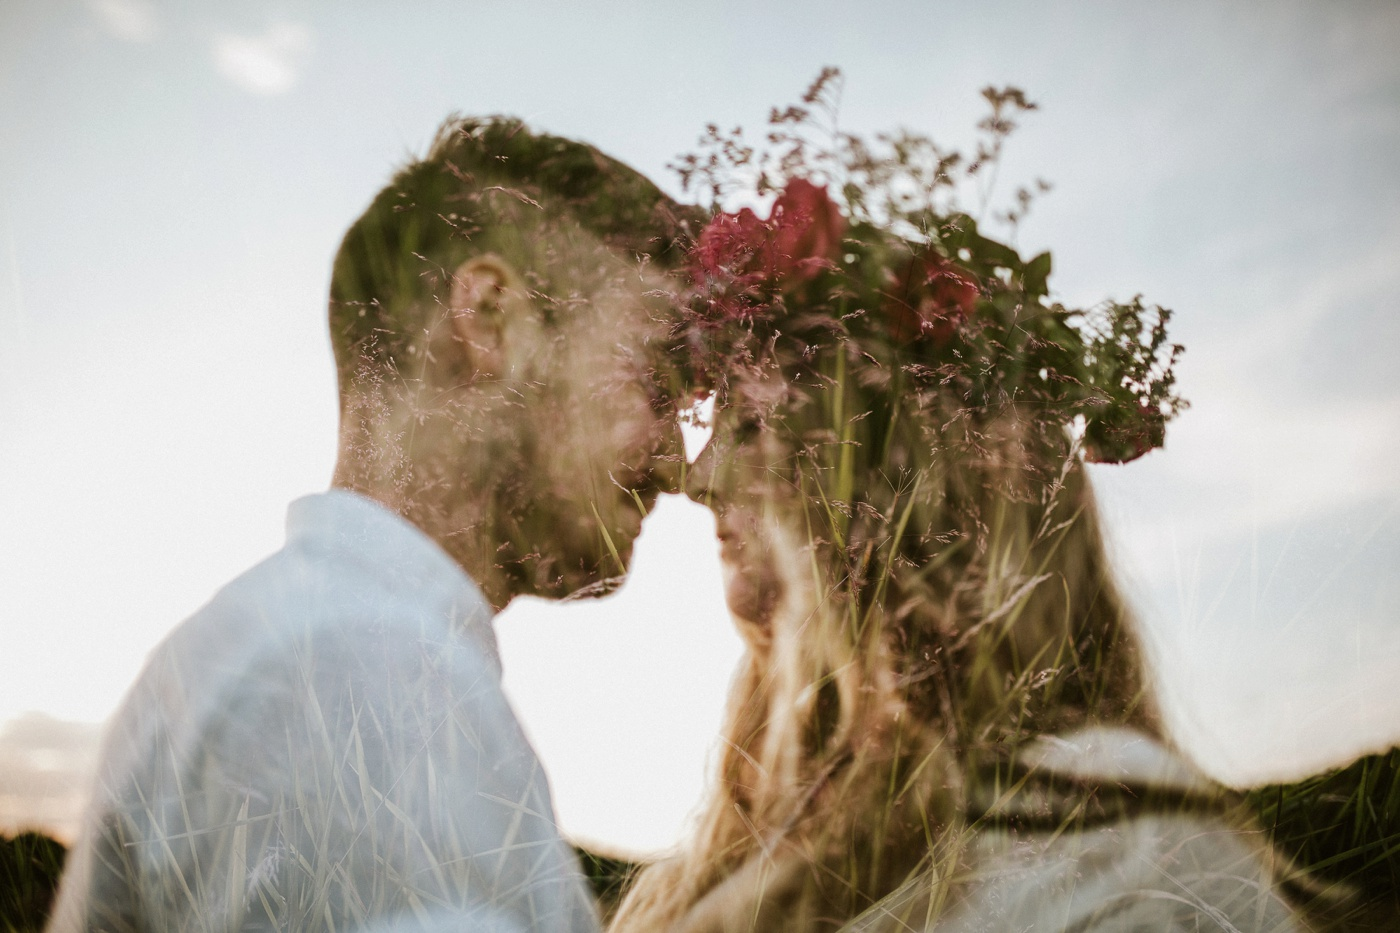 natalie-wictor_swedish-relaxed-candid-quirky-fun-engagement-session_18